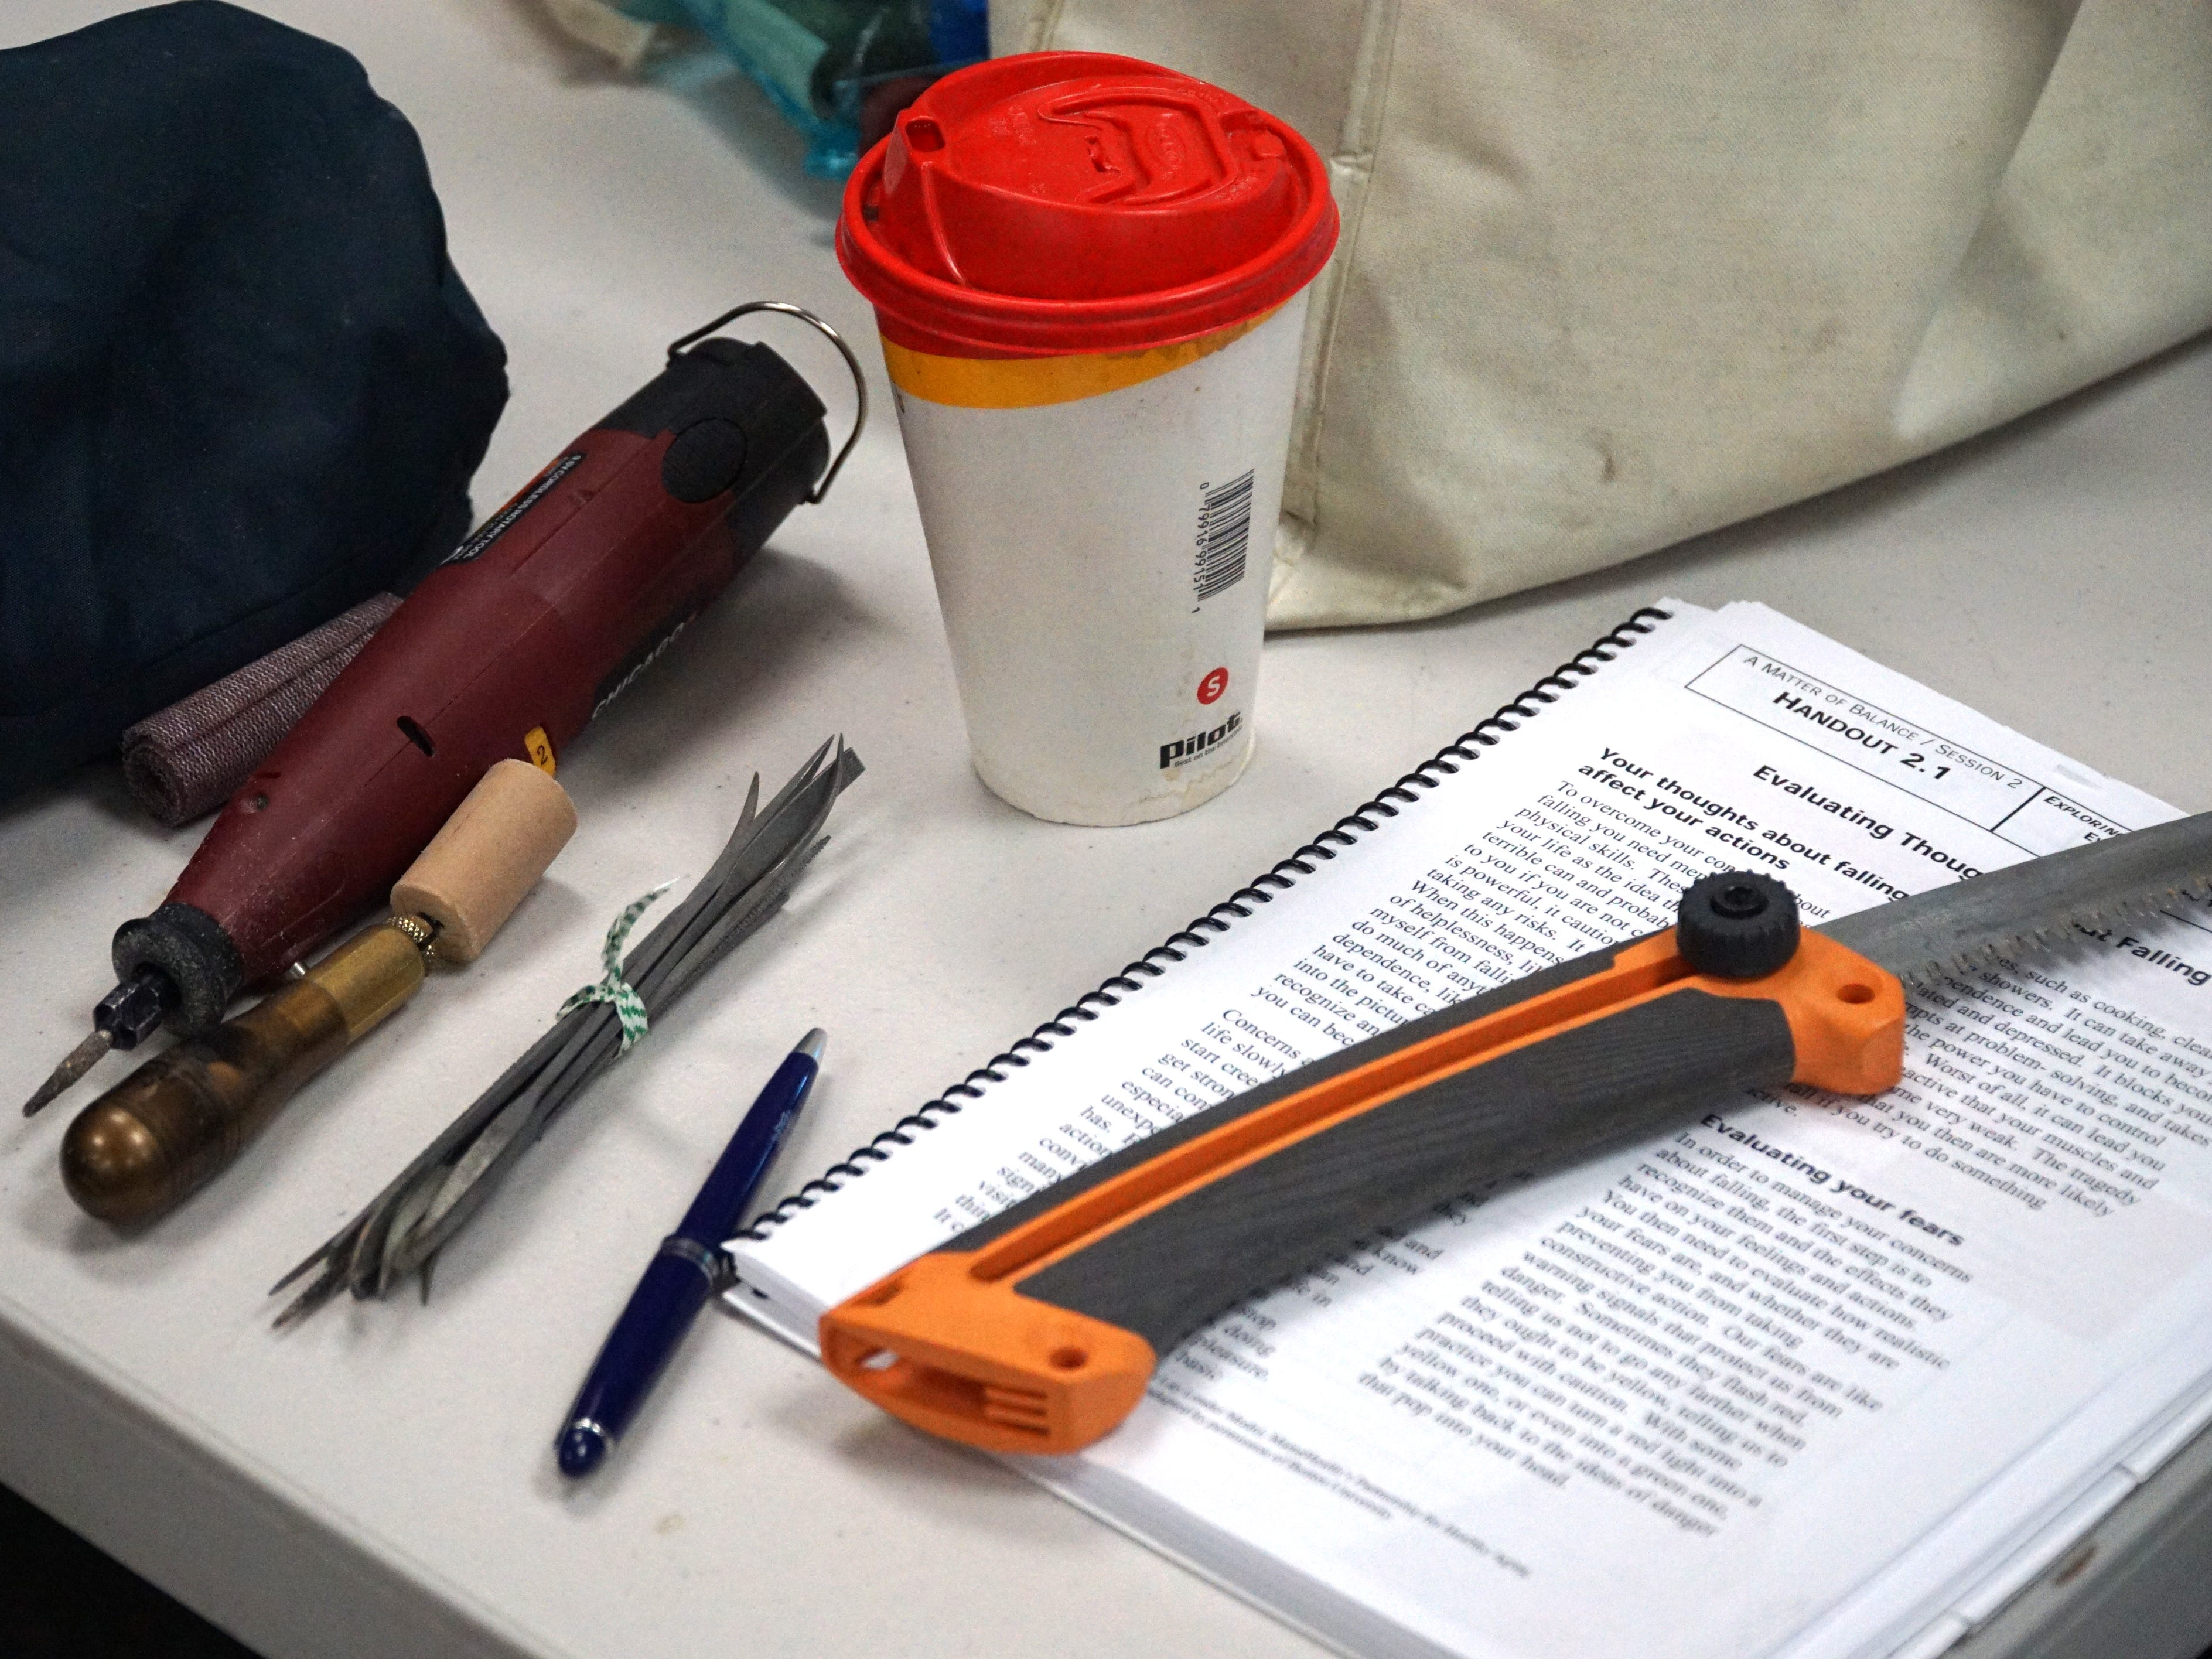 Some of the tools of the woodcarving trade: Exacto blades, small wood-carving points, a serated blade, Dremel tool and coffee.